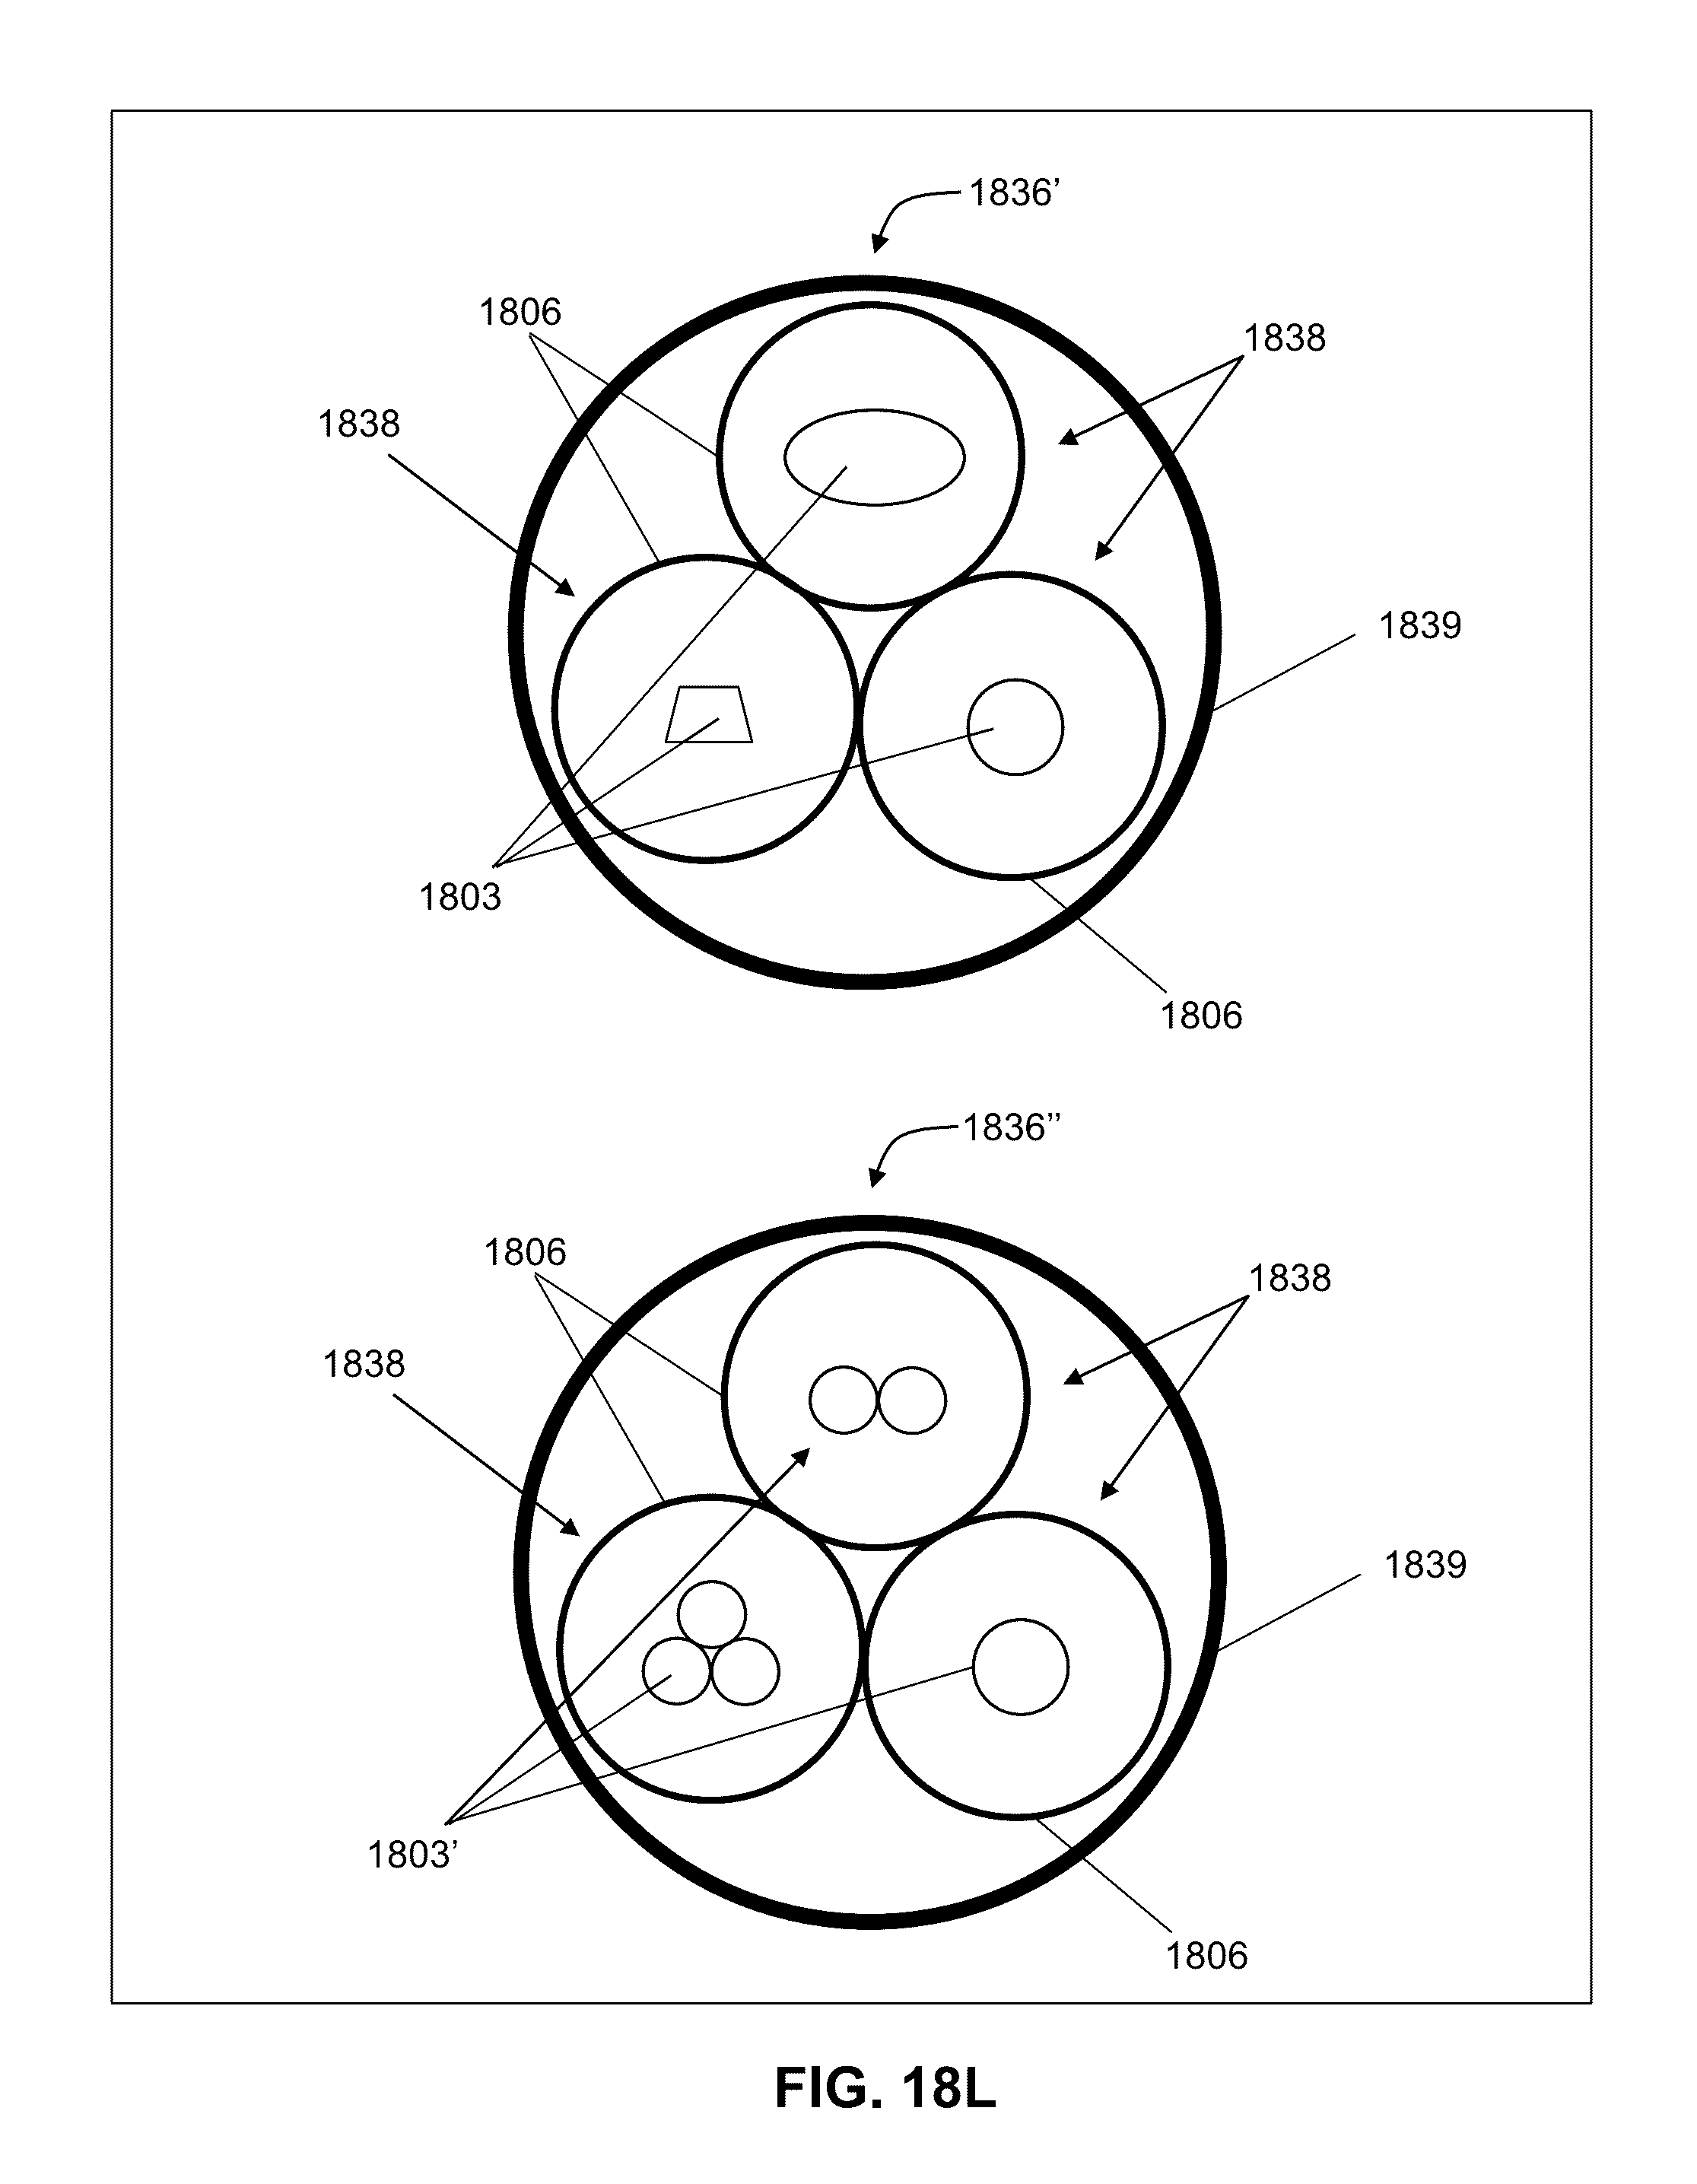 us9640850b2 methods and apparatus for inducing a non fundamental Xfinity X2 us9640850b2 methods and apparatus for inducing a non fundamental wave mode on a transmission medium patents